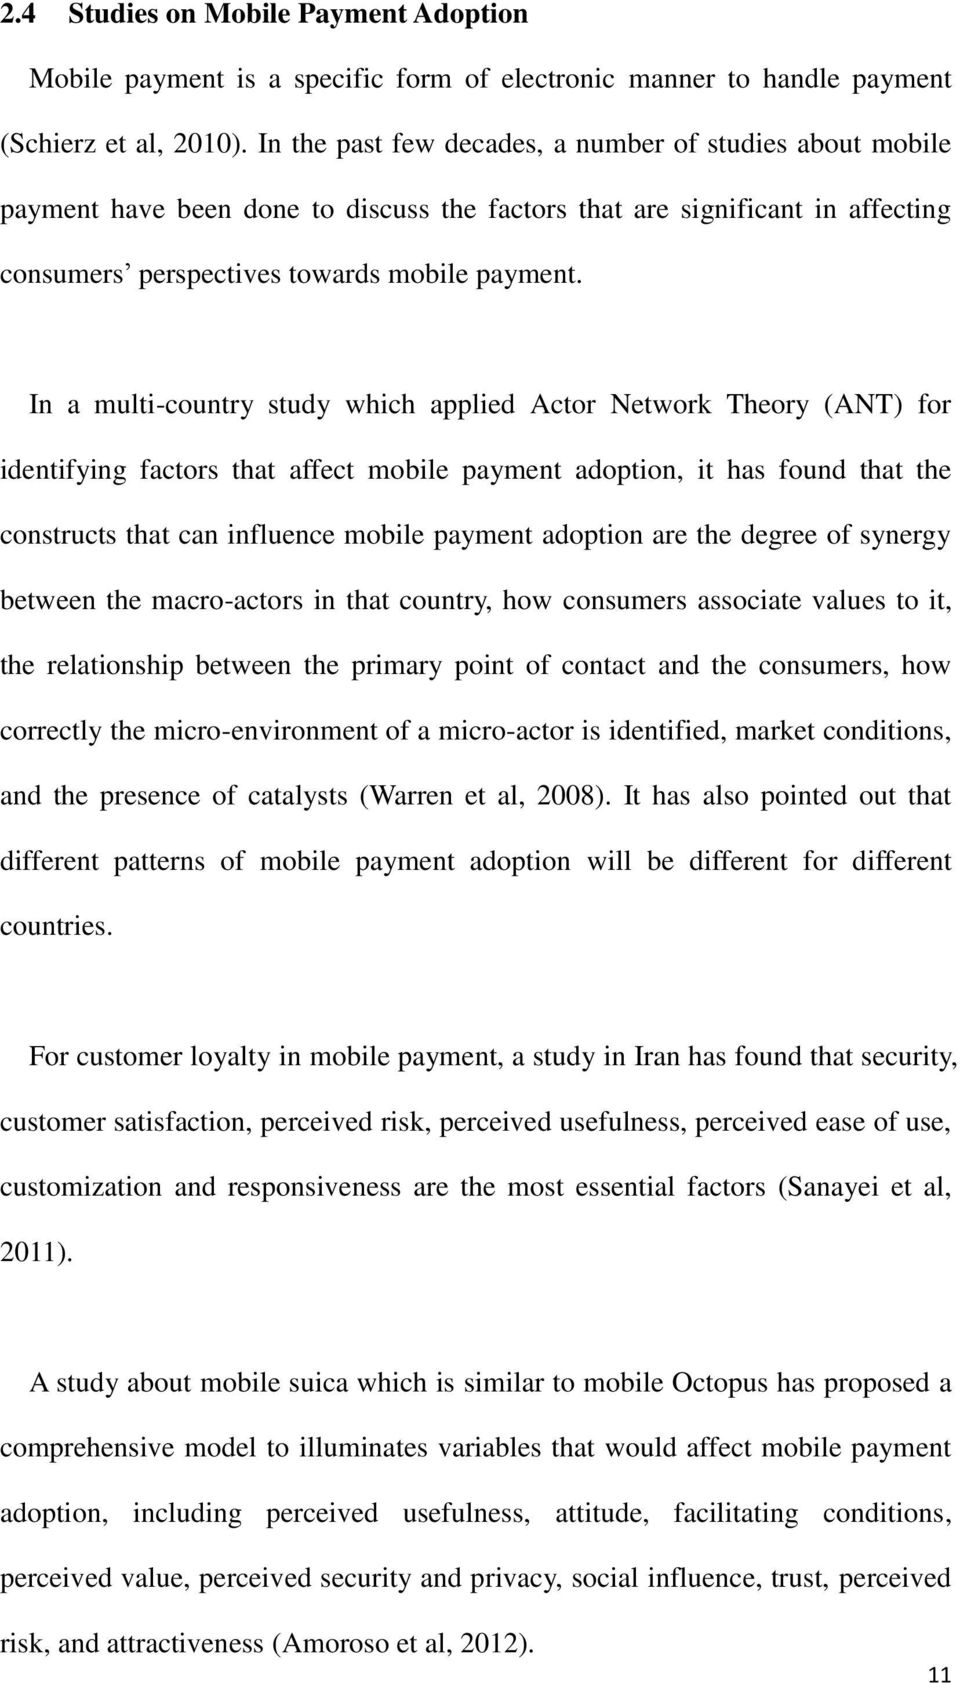 In a multi-country study which applied Actor Network Theory (ANT) for identifying factors that affect mobile payment adoption, it has found that the constructs that can influence mobile payment